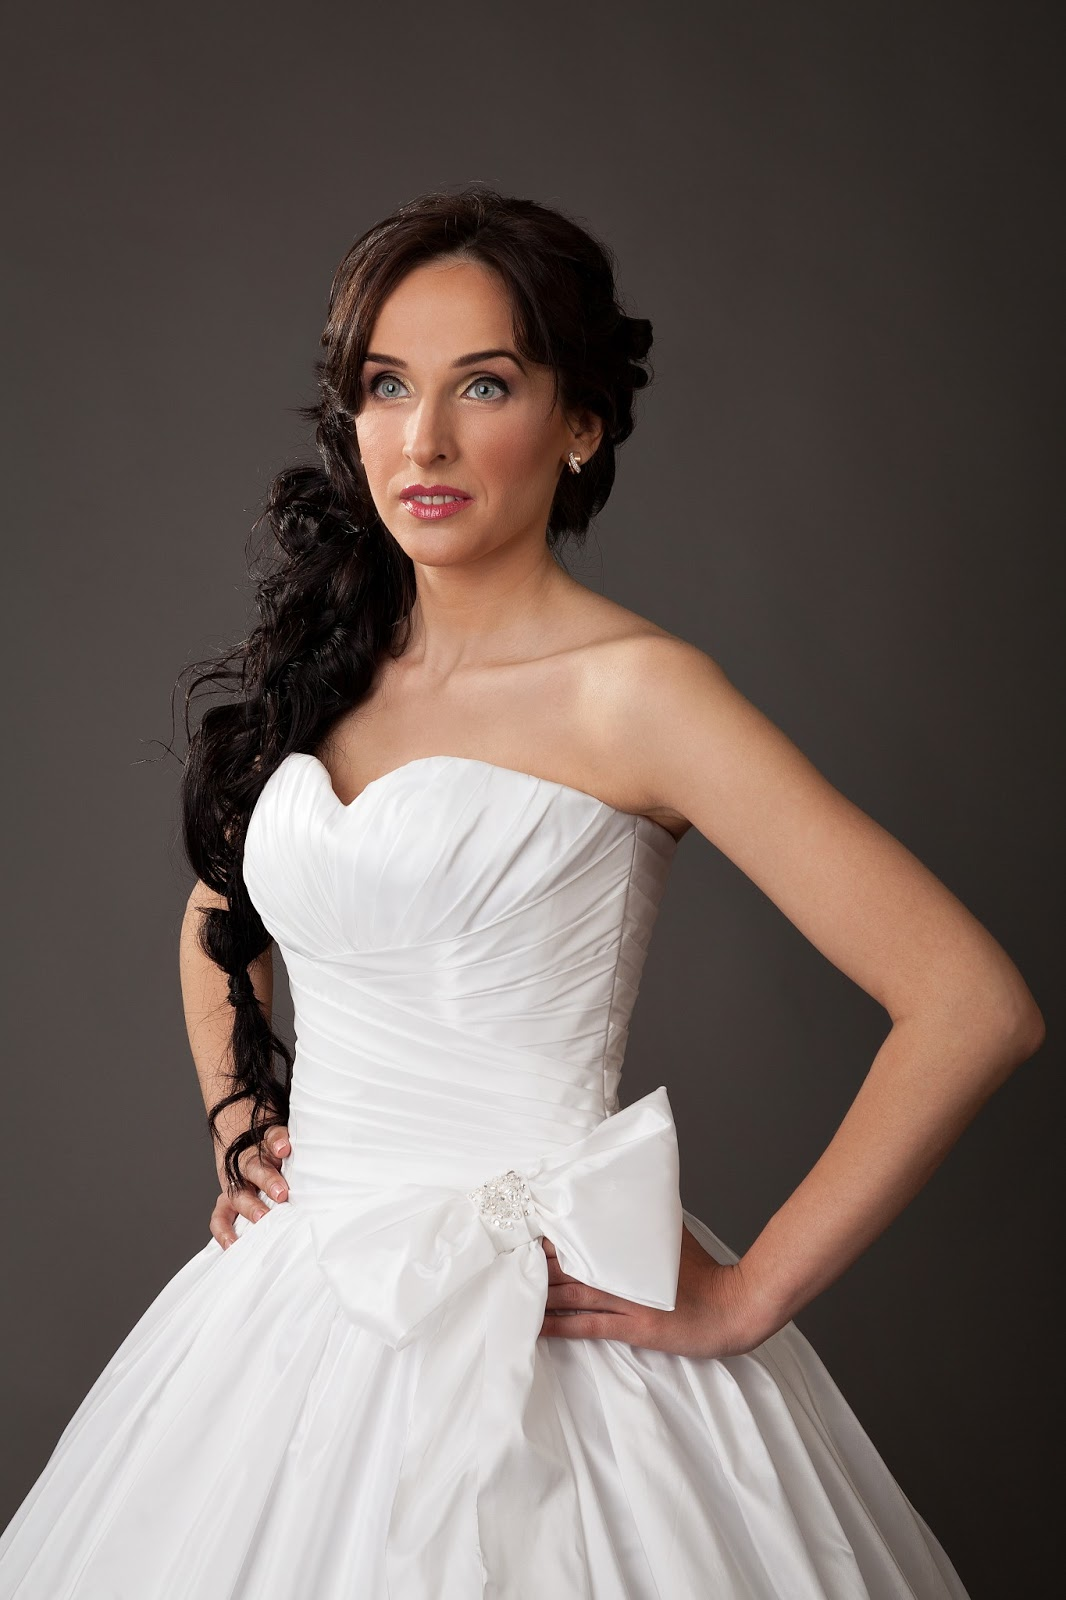 Diana Vonda Krieva Bridal Photo Shoot Together With Art Mode